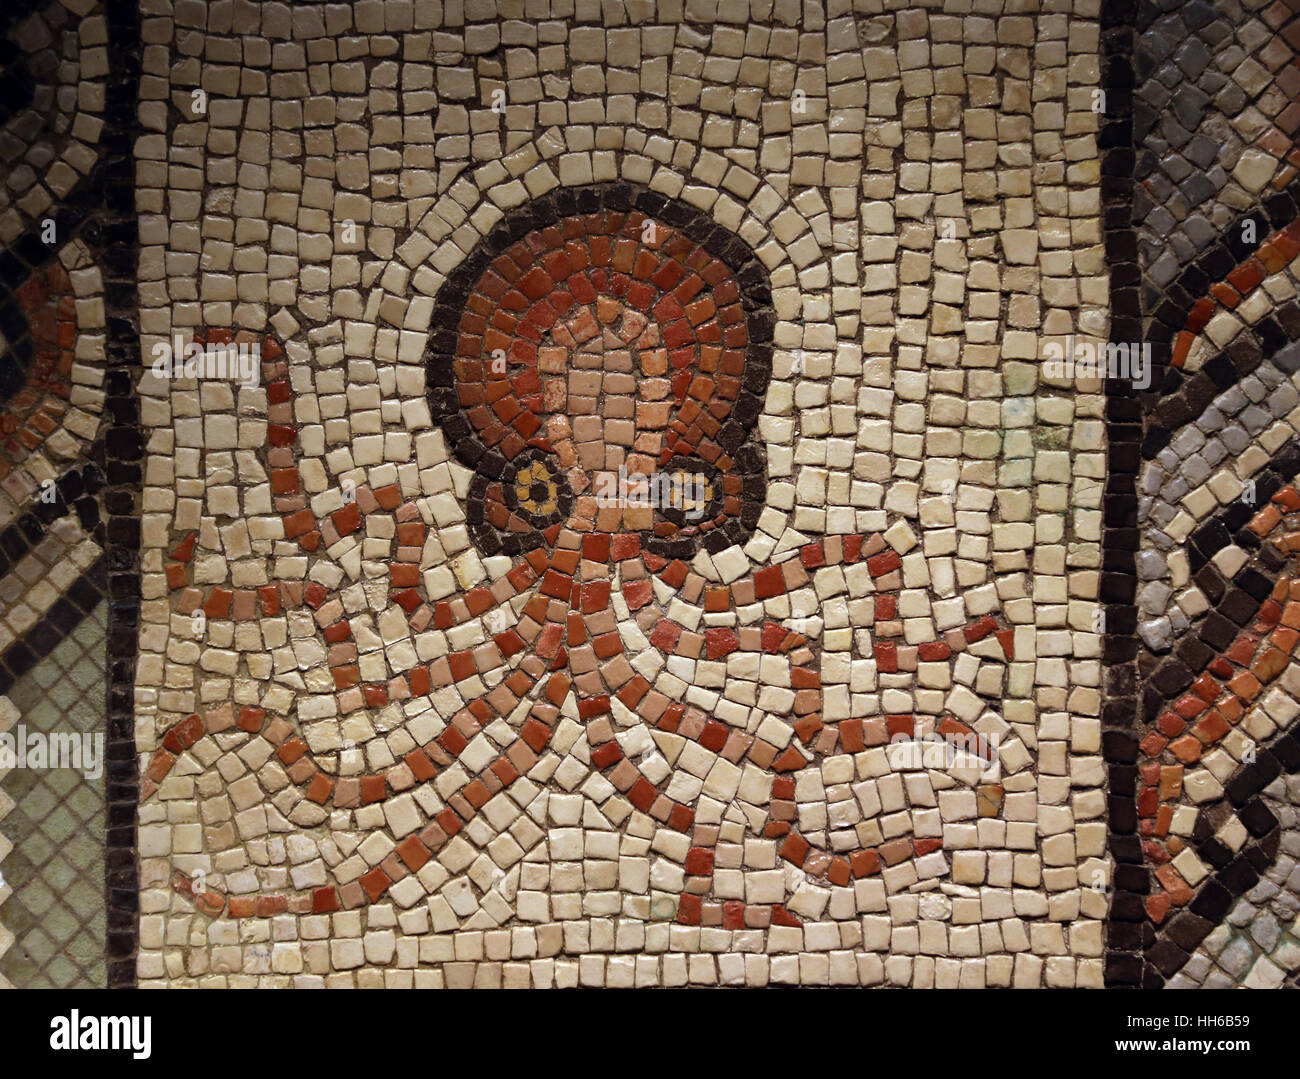 Mosaic with octopus. Limestone. 2nd-3rd century. Villaquejida, Leon. Spain. National Archaeological Museum, Madrid. Stock Photo